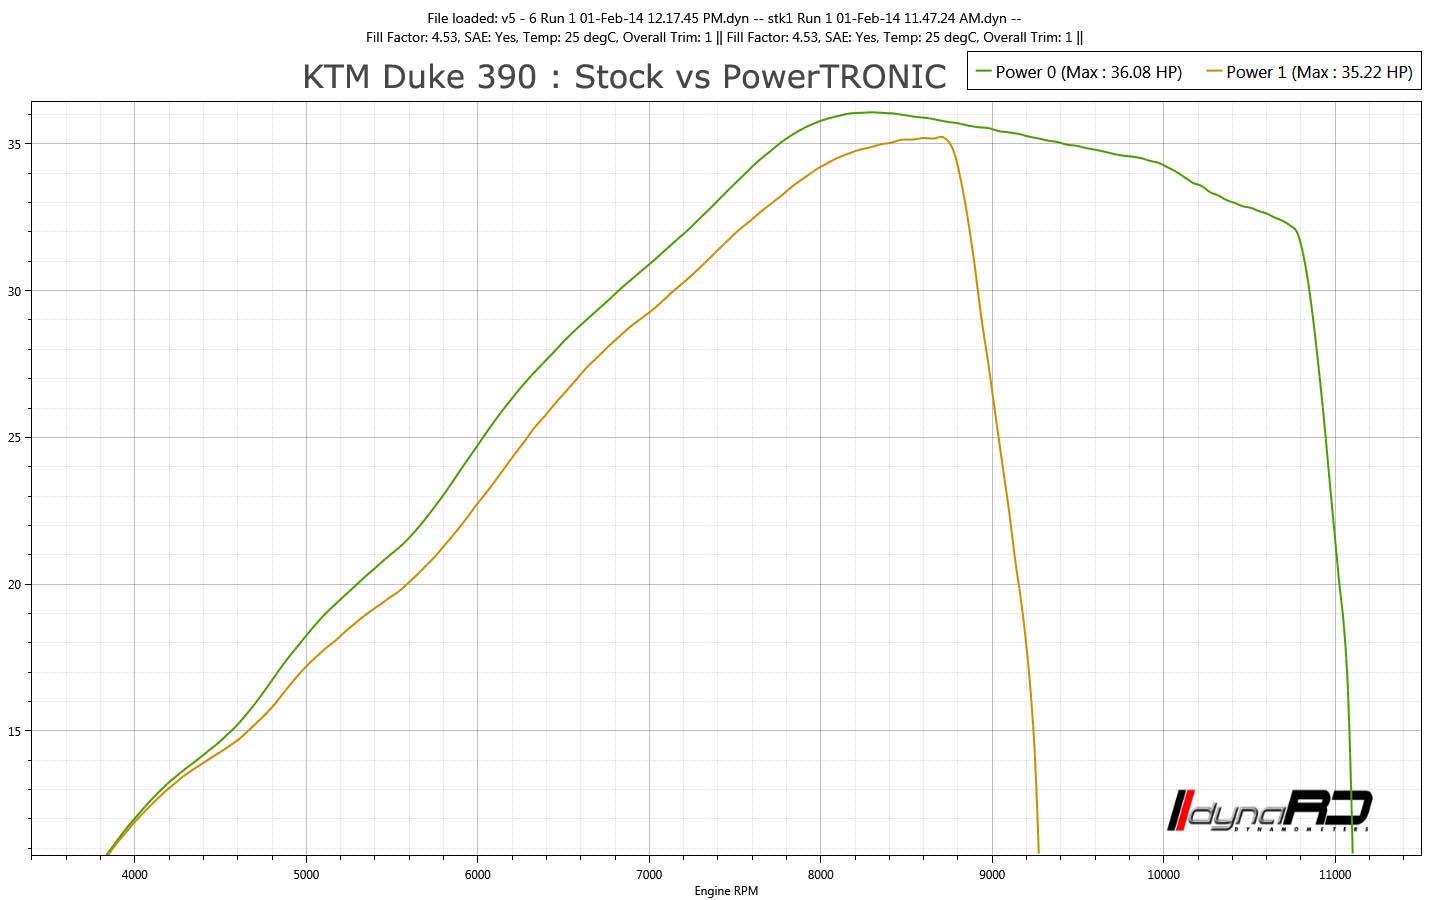 PowerTRONIC Plug-in Piggyback Ecu - Everything you need to know!-ktm-390_hp_stockvspowertronic.jpg